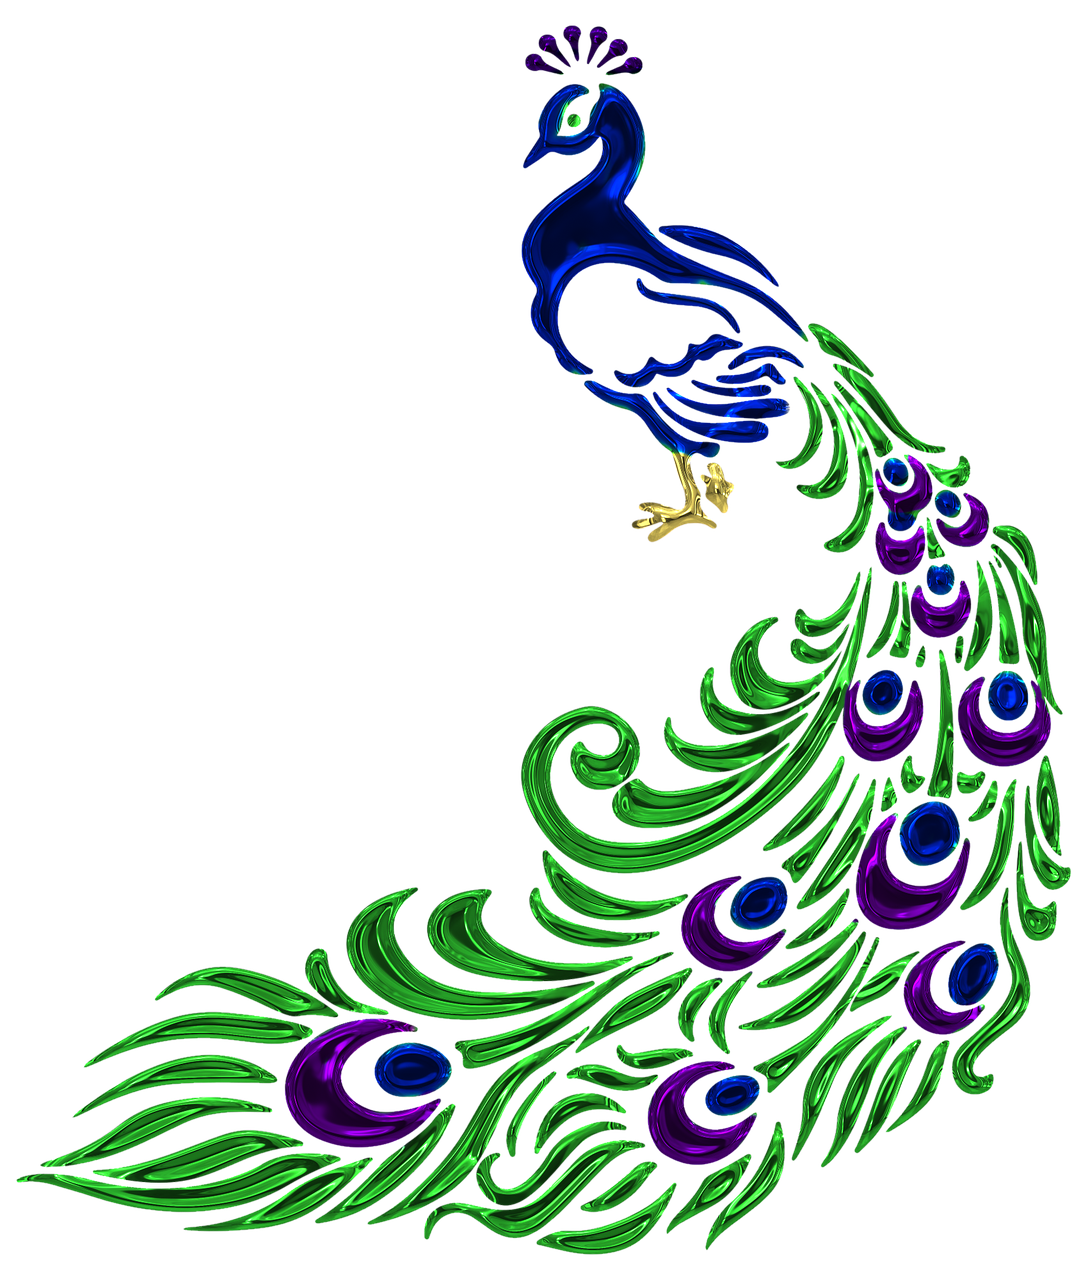 vector black and white Drawing peacocks hard. Free image on pixabay